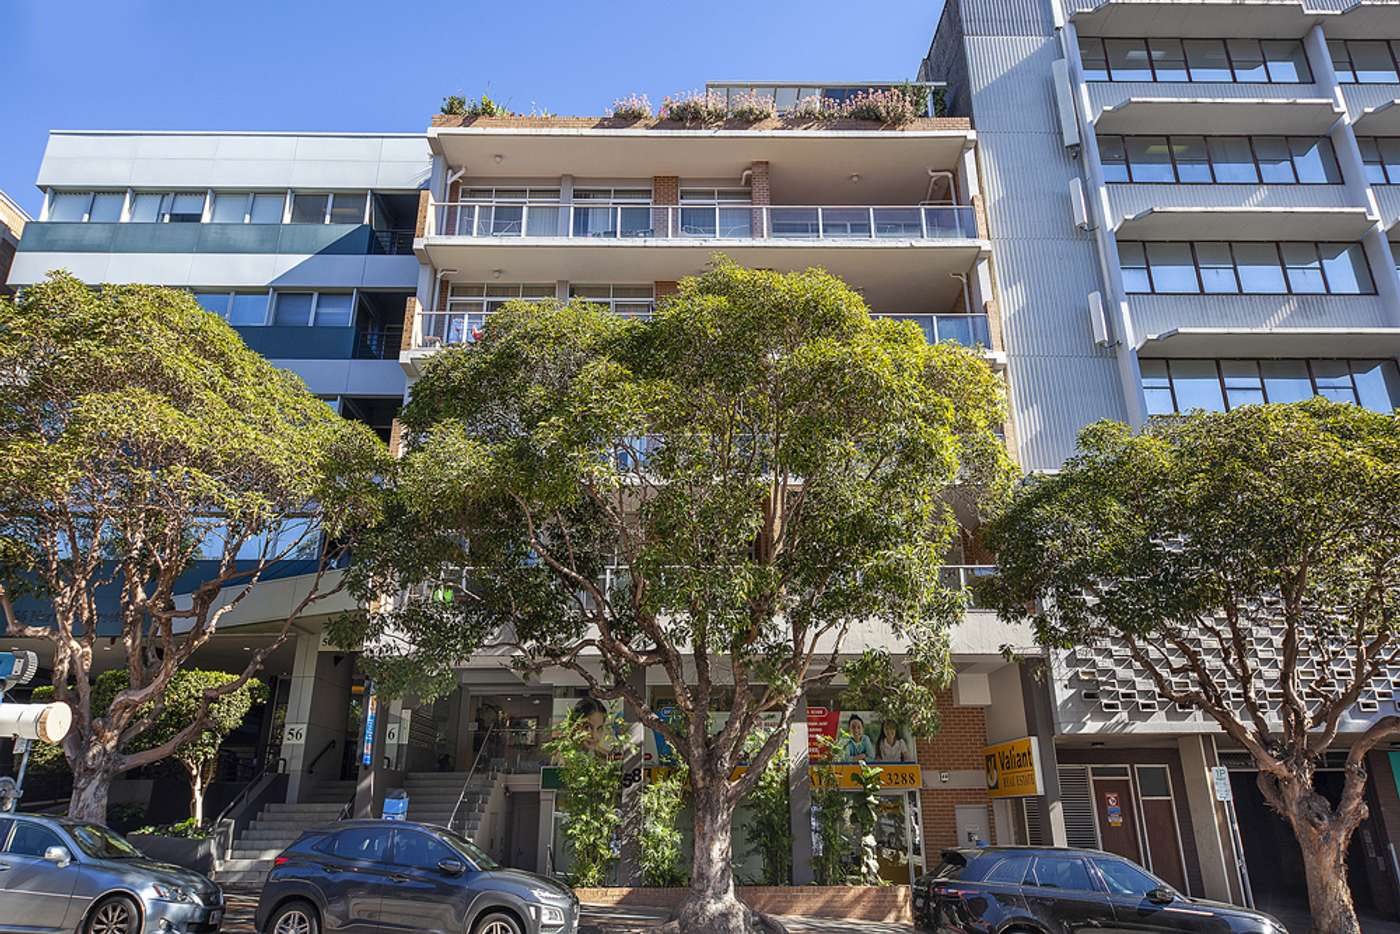 Main view of Homely apartment listing, 102/58 Neridah St, Chatswood NSW 2067